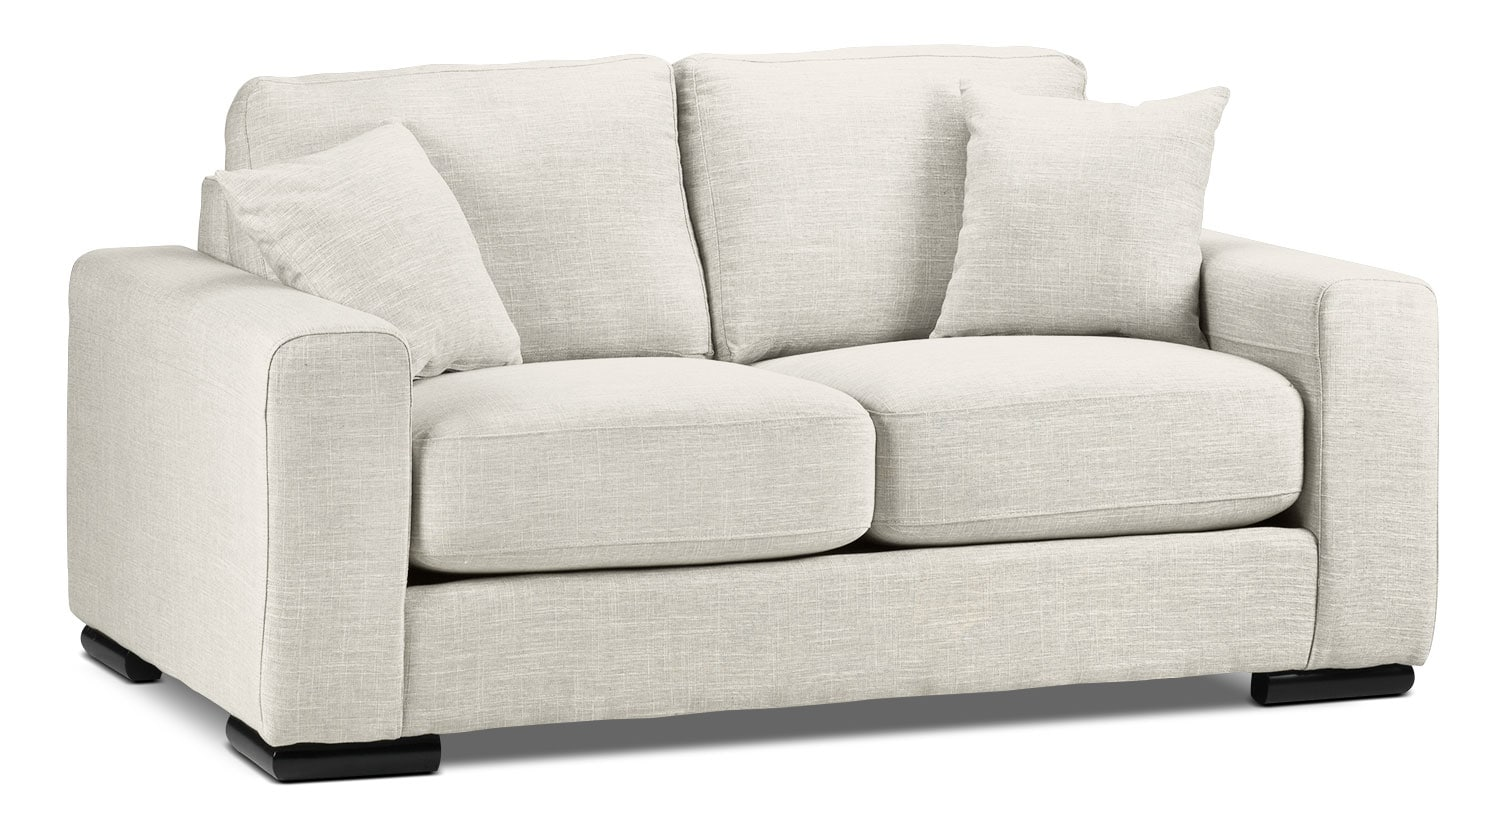 Living Room Furniture - Precious Loveseat - Wheat